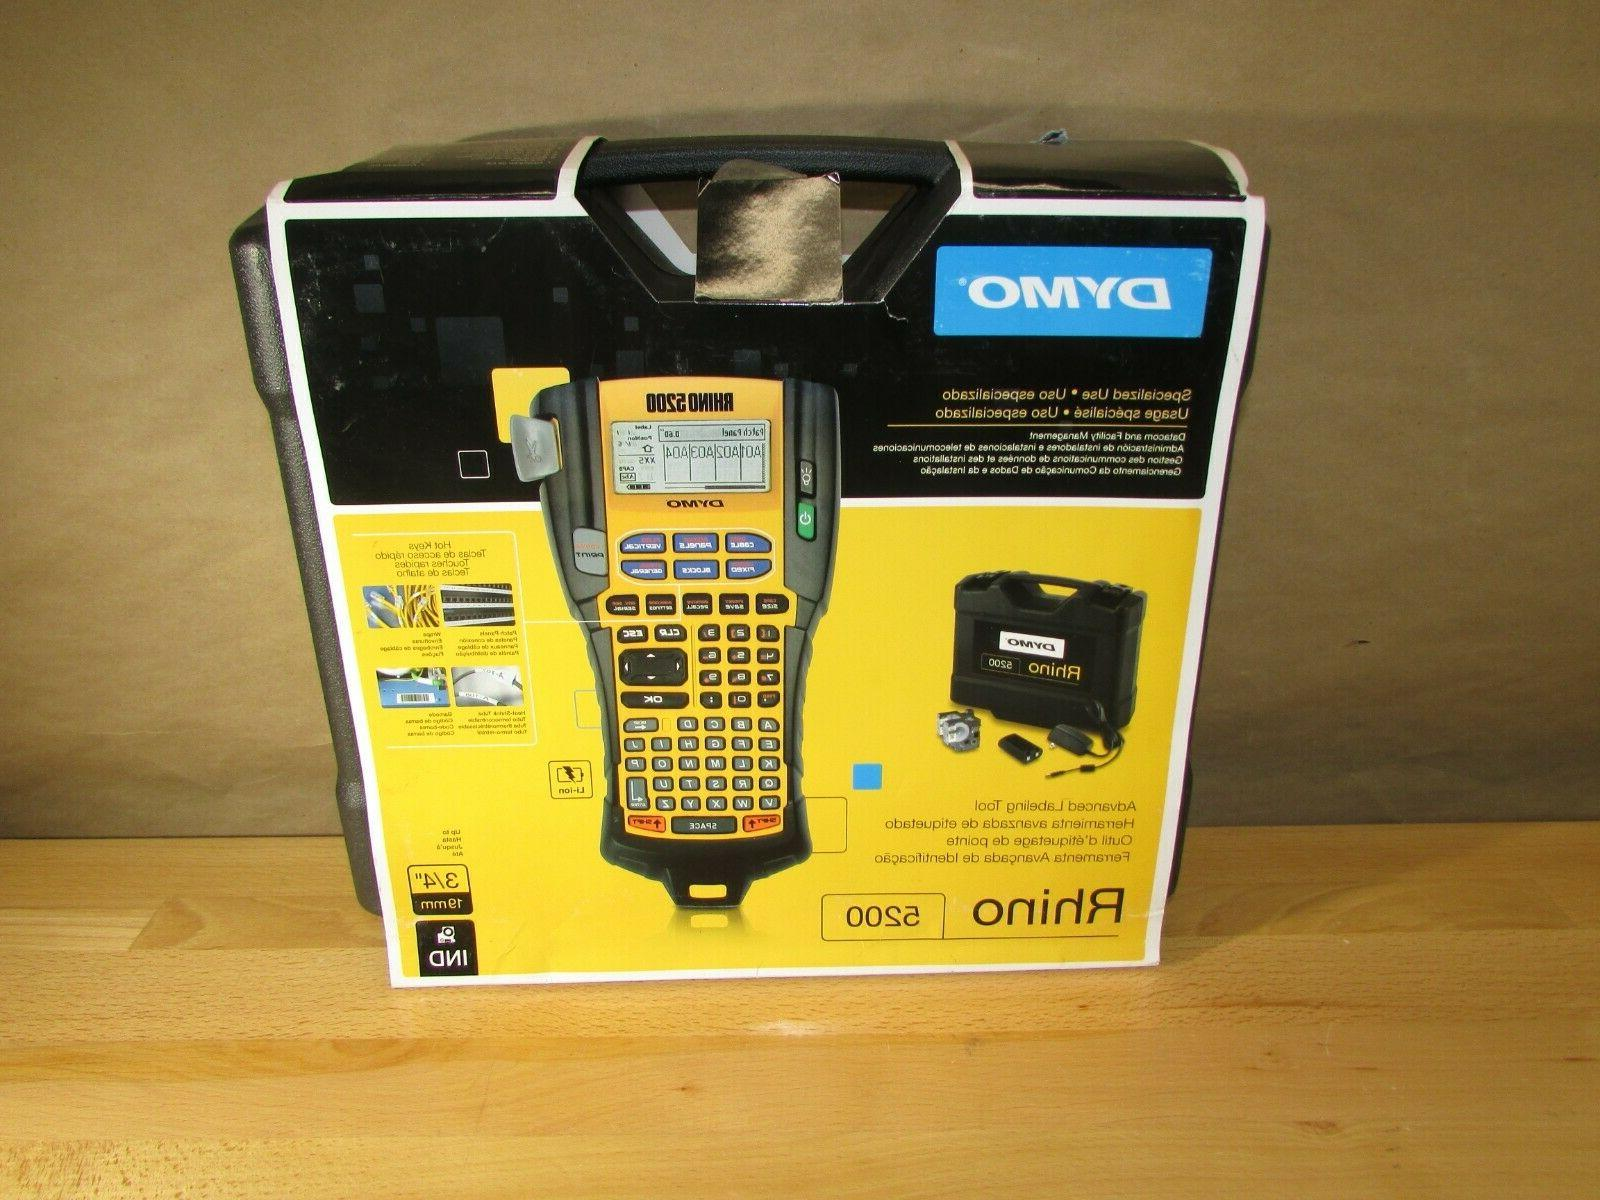 dymo rhino 5200 label maker